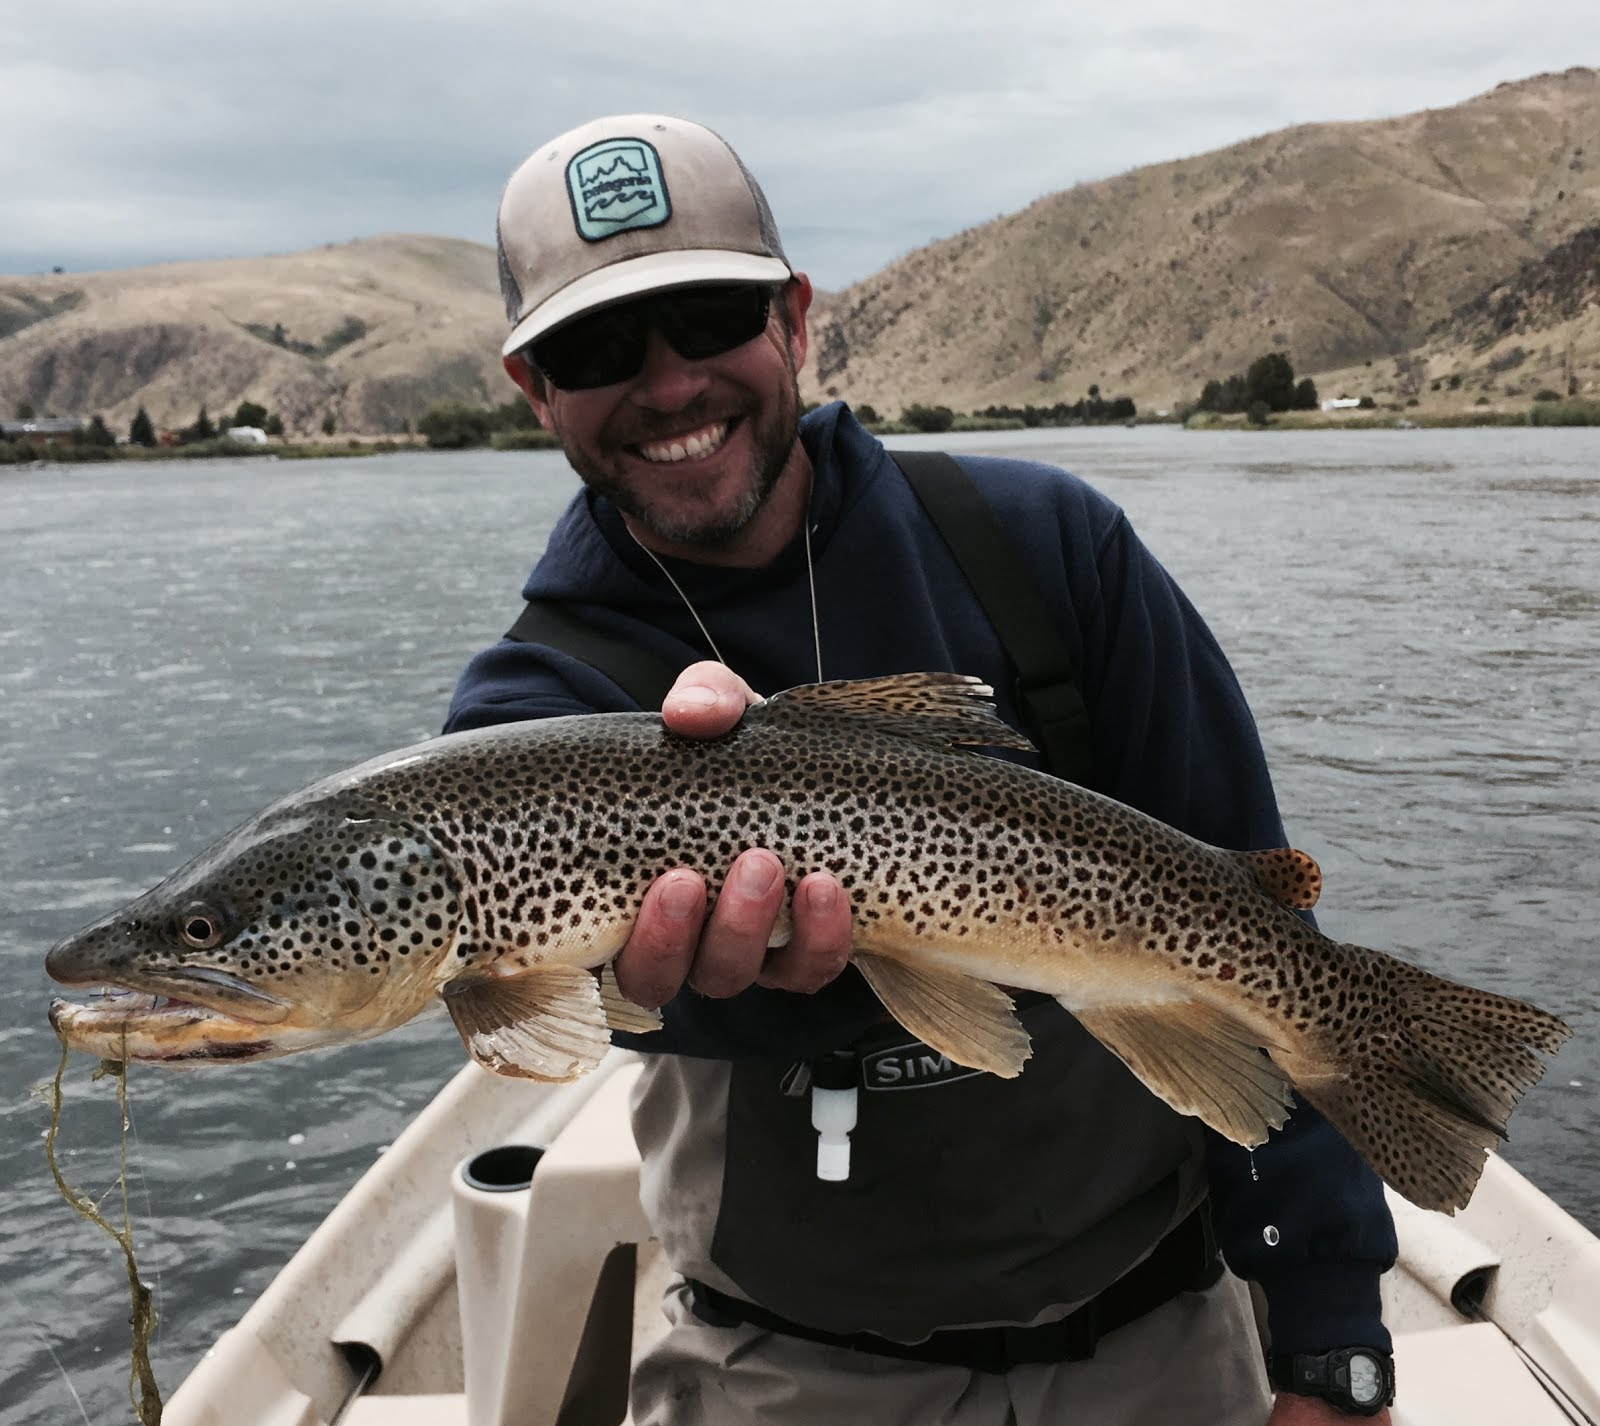 bozeman fly - fishing guides and outfitters - bozeman, mt, Fly Fishing Bait